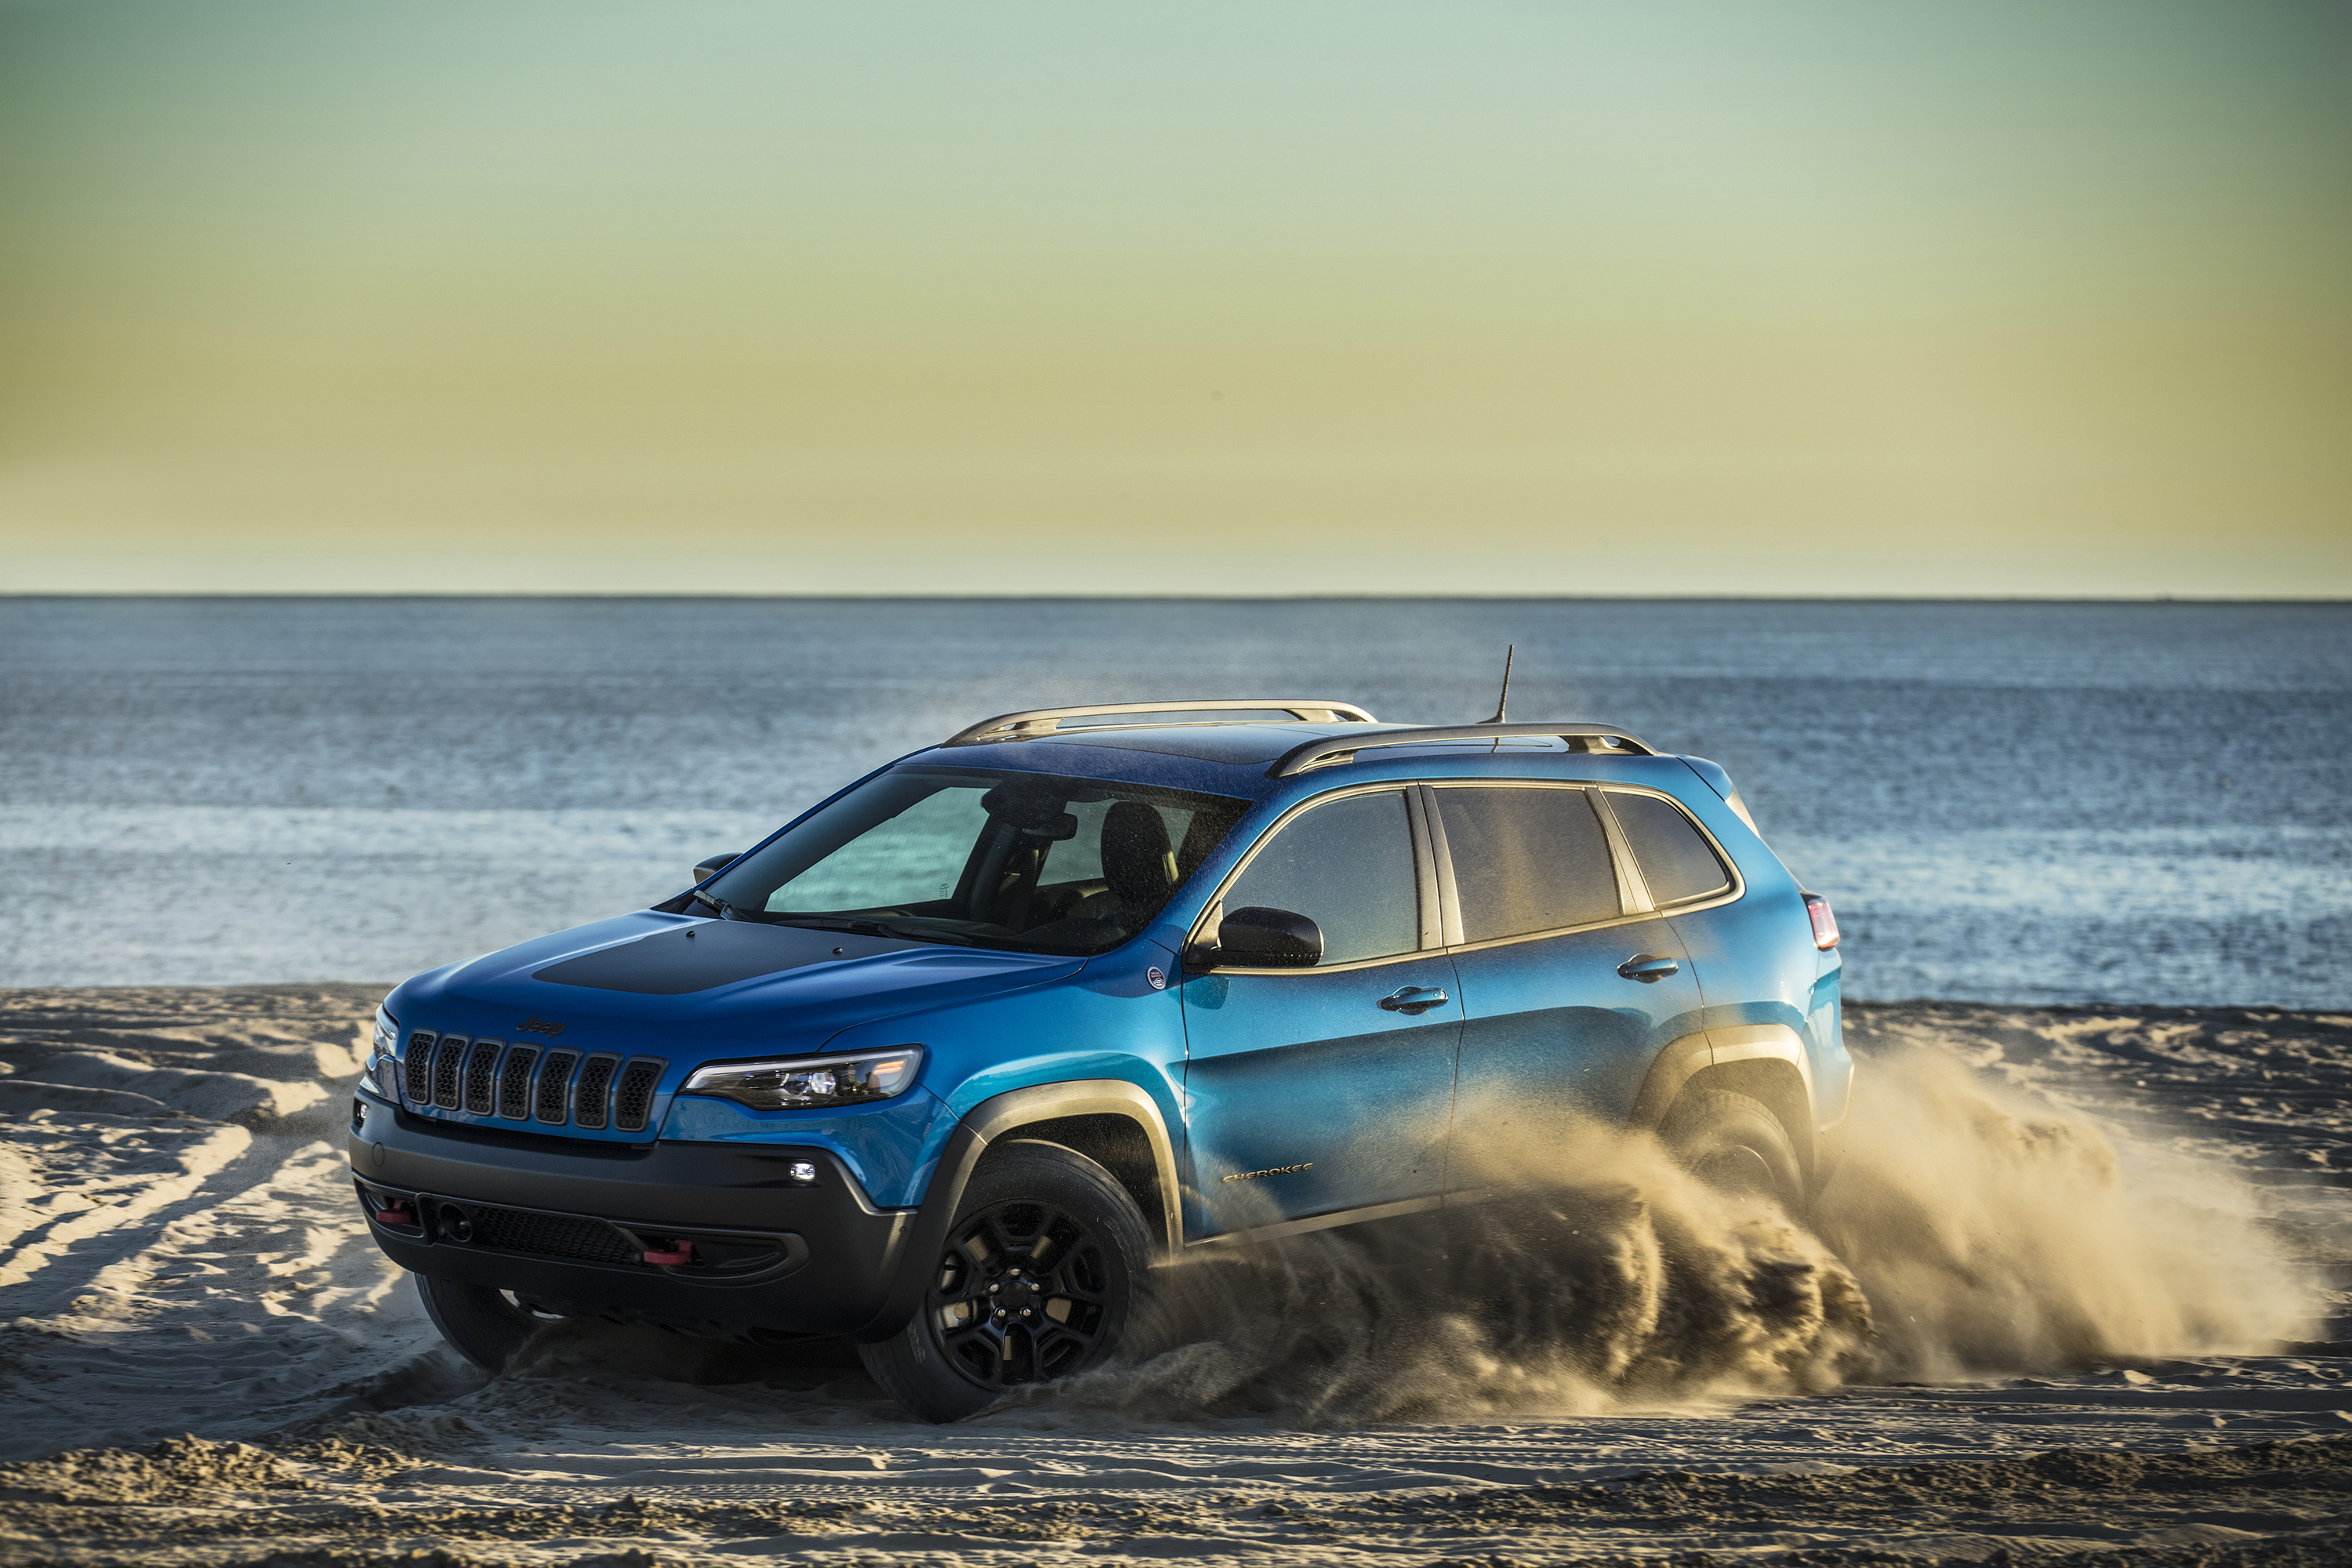 blue jeep cherokee on beach wallpaper 65160